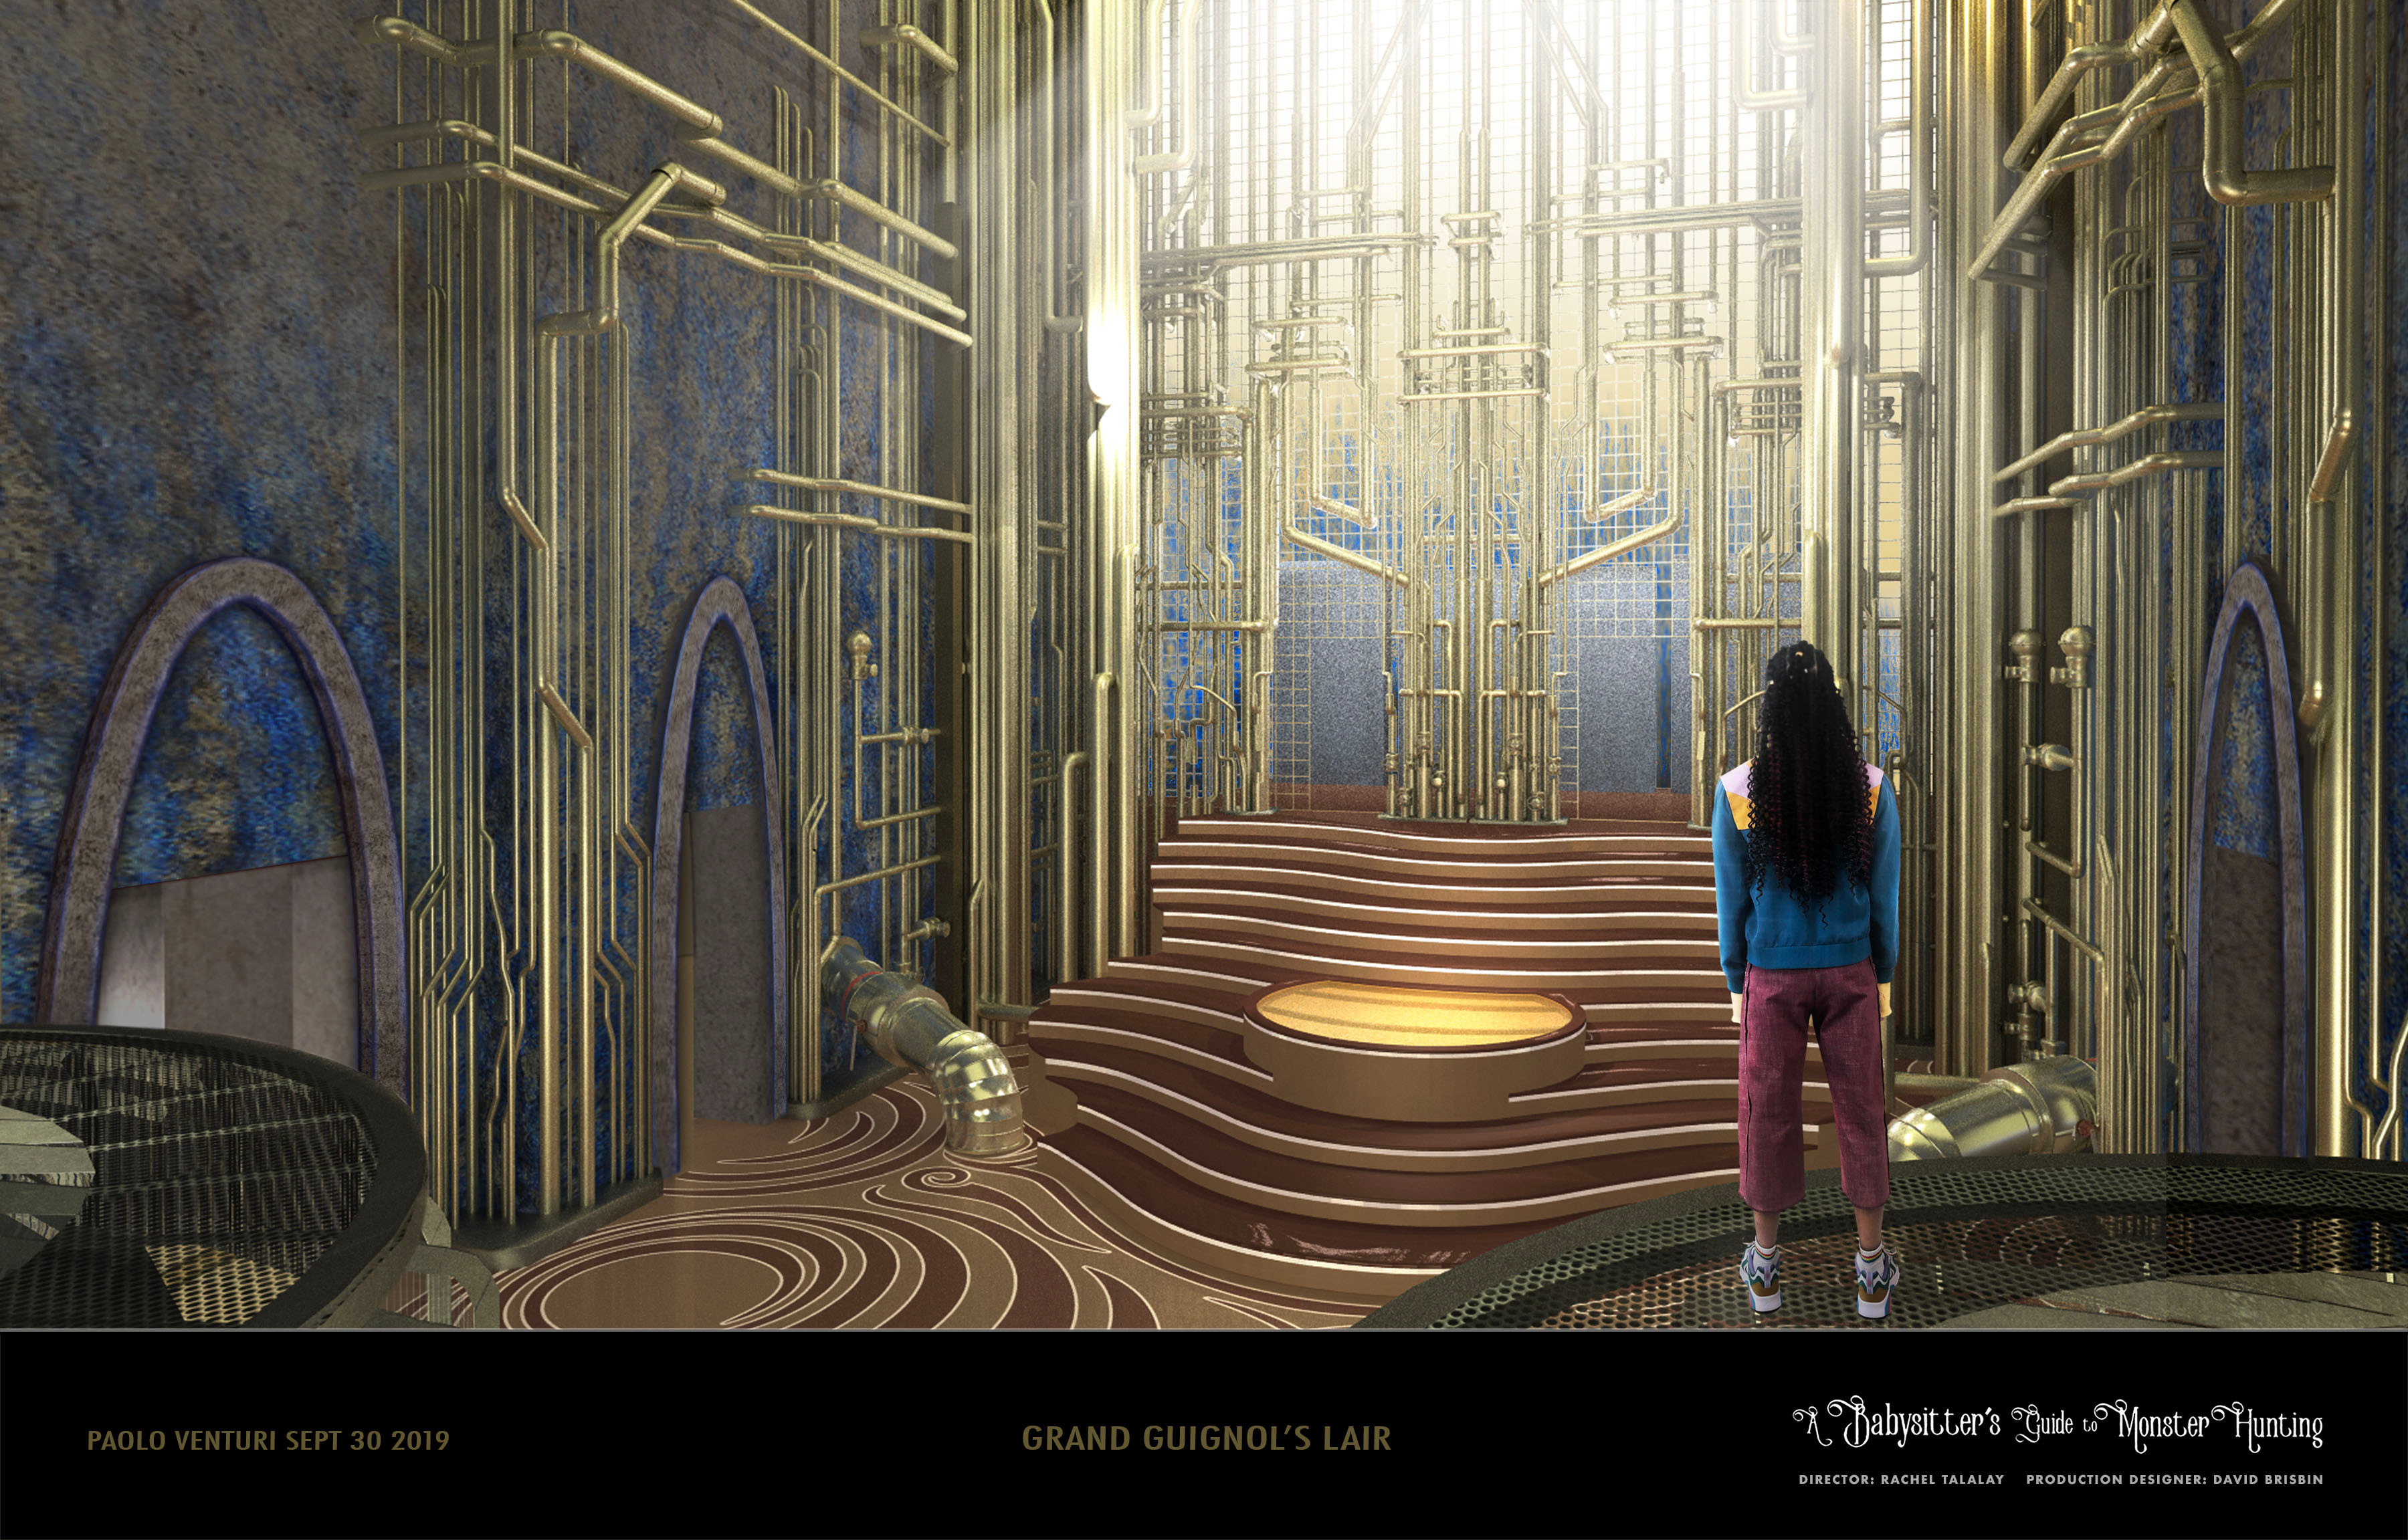 A Babysitter's Guide to Monster Hunting - Int Lair Set Design and Floor Treatment